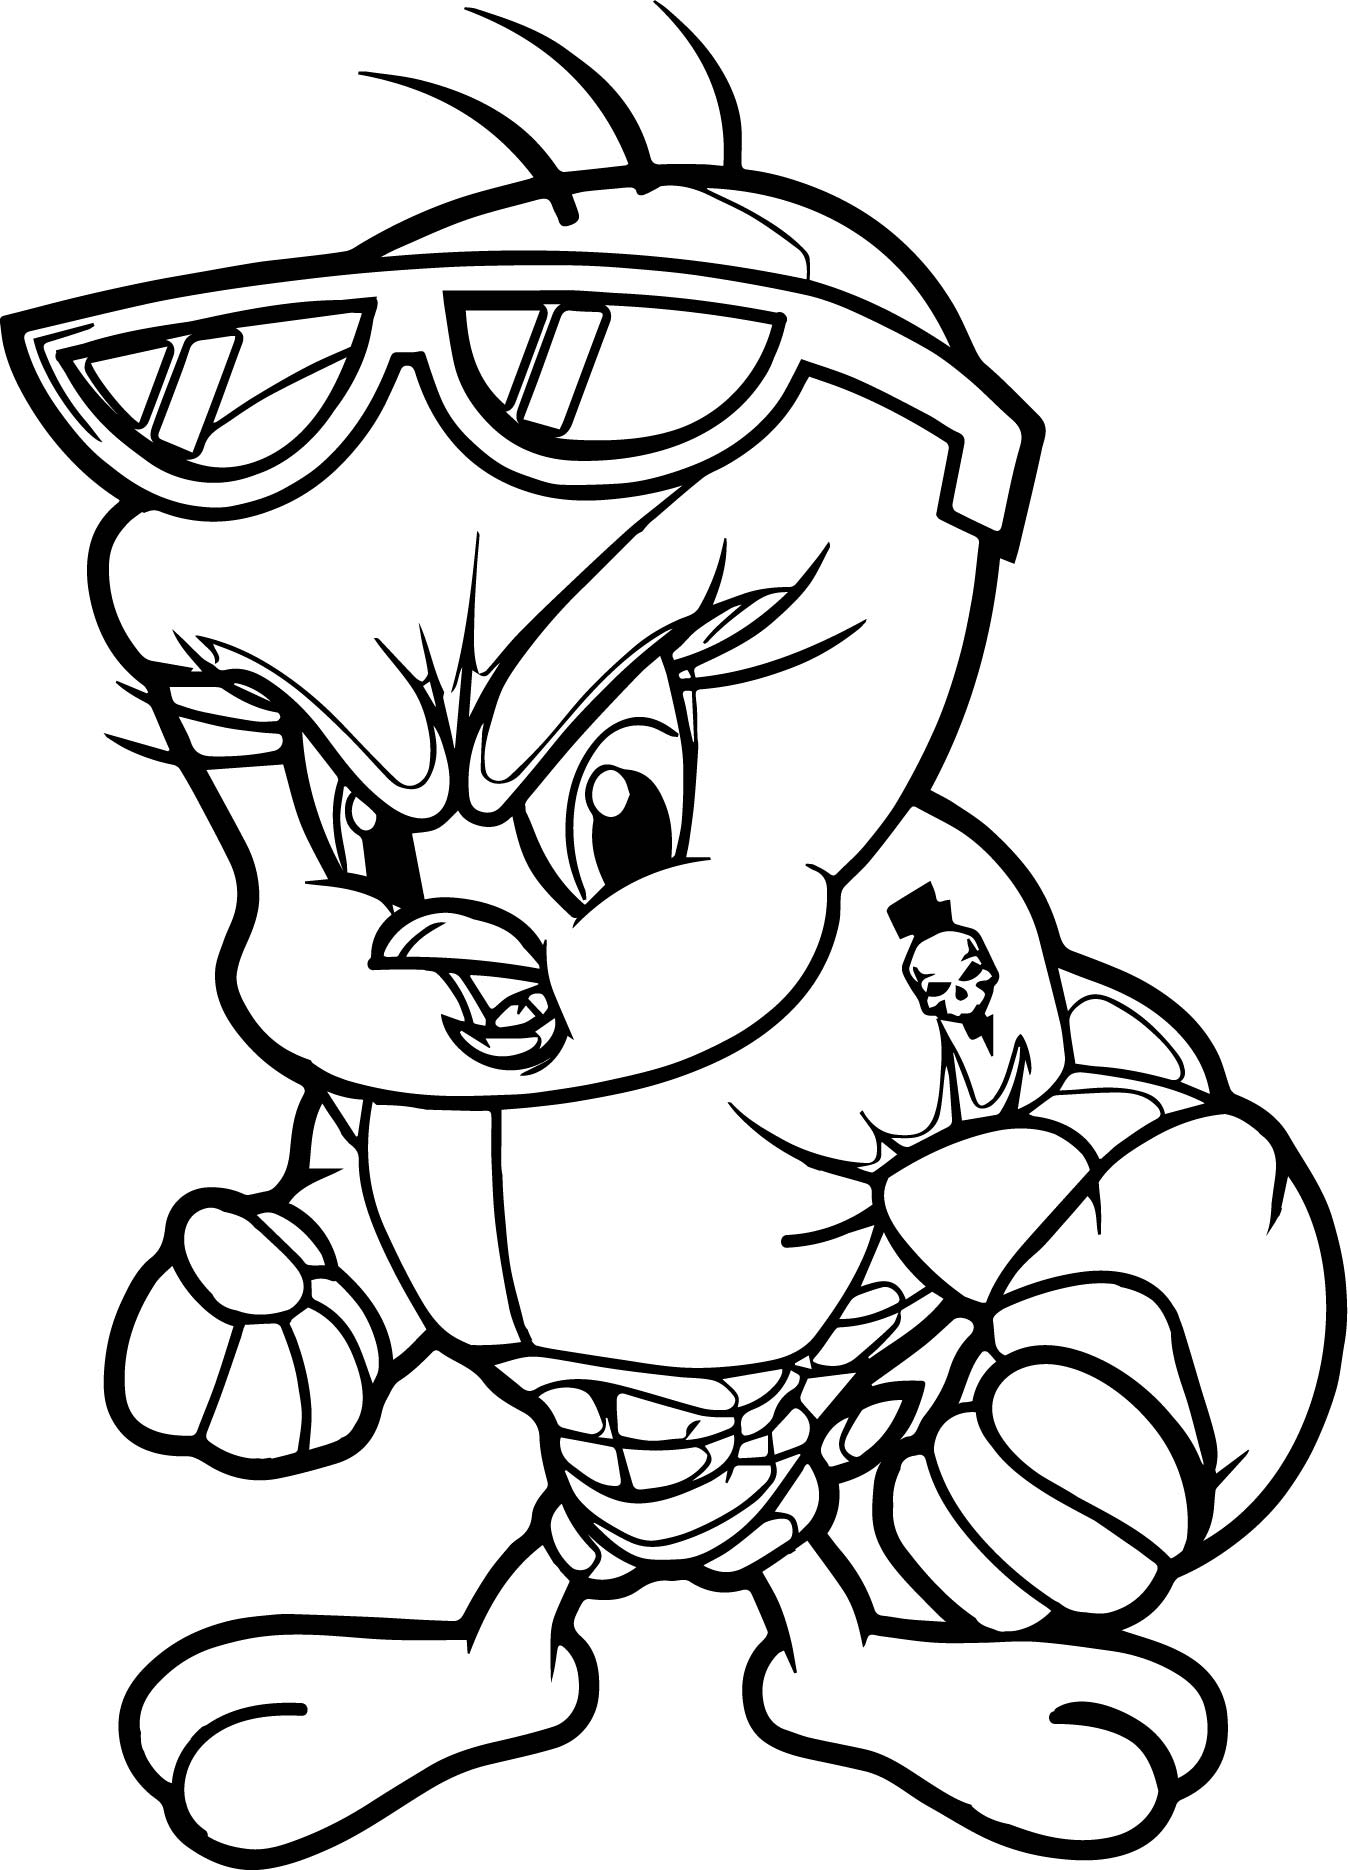 Power Tweety Coloring Page